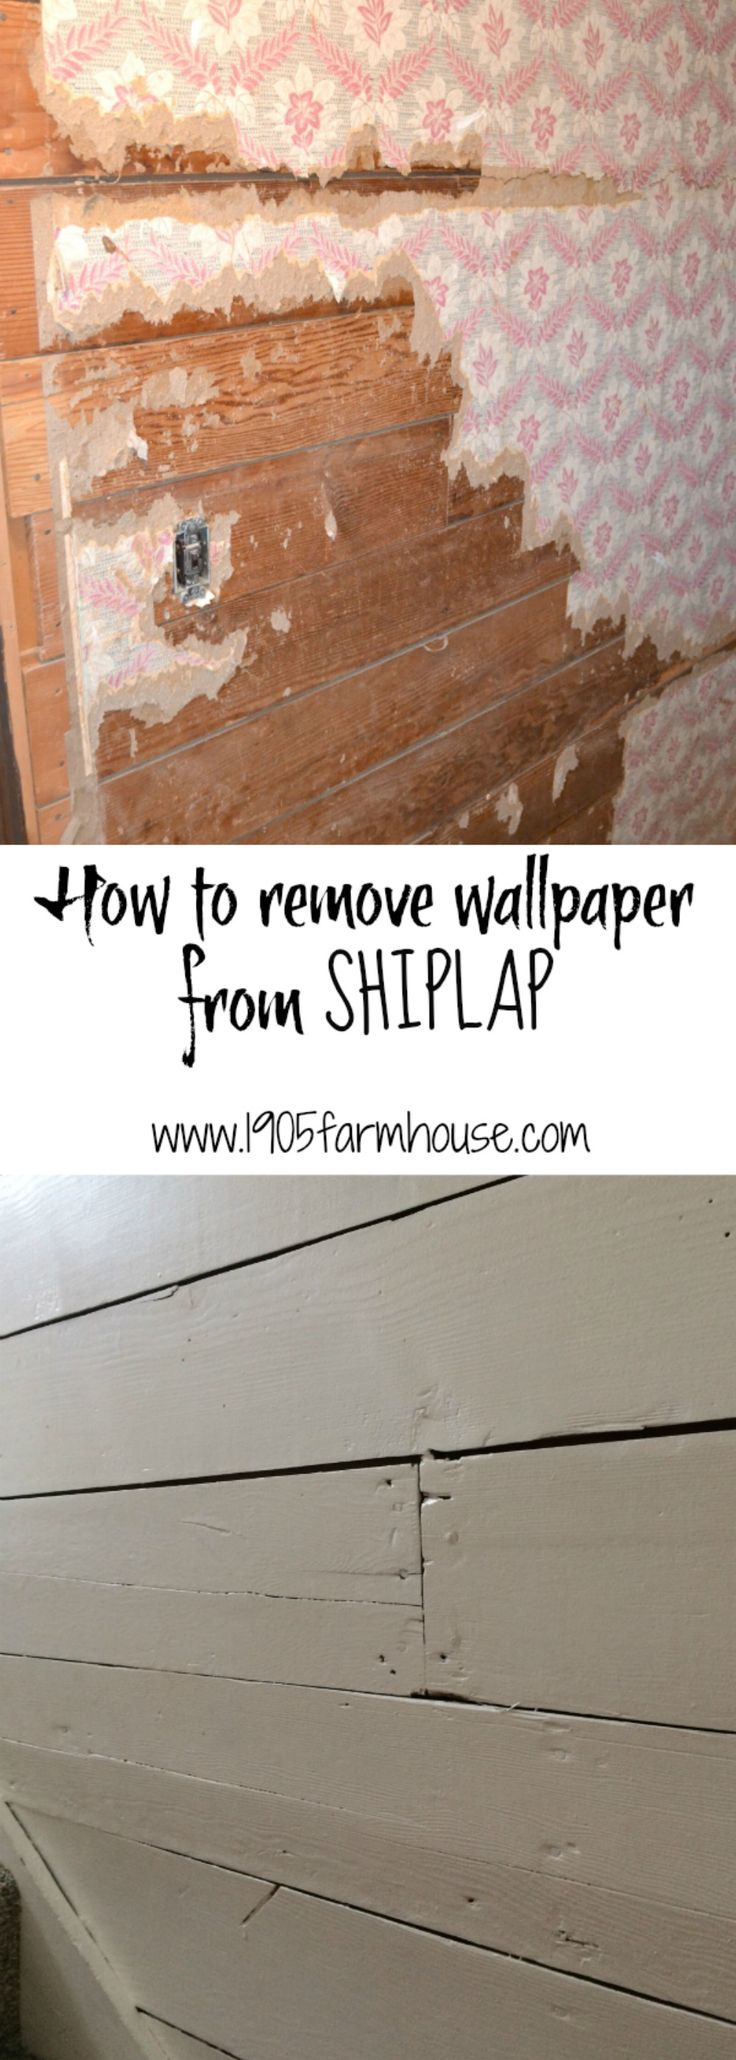 How to remove wallpaper paste from sheetrock - How To Remove Old Wallpaper From Original Shiplap In A Farmhouse